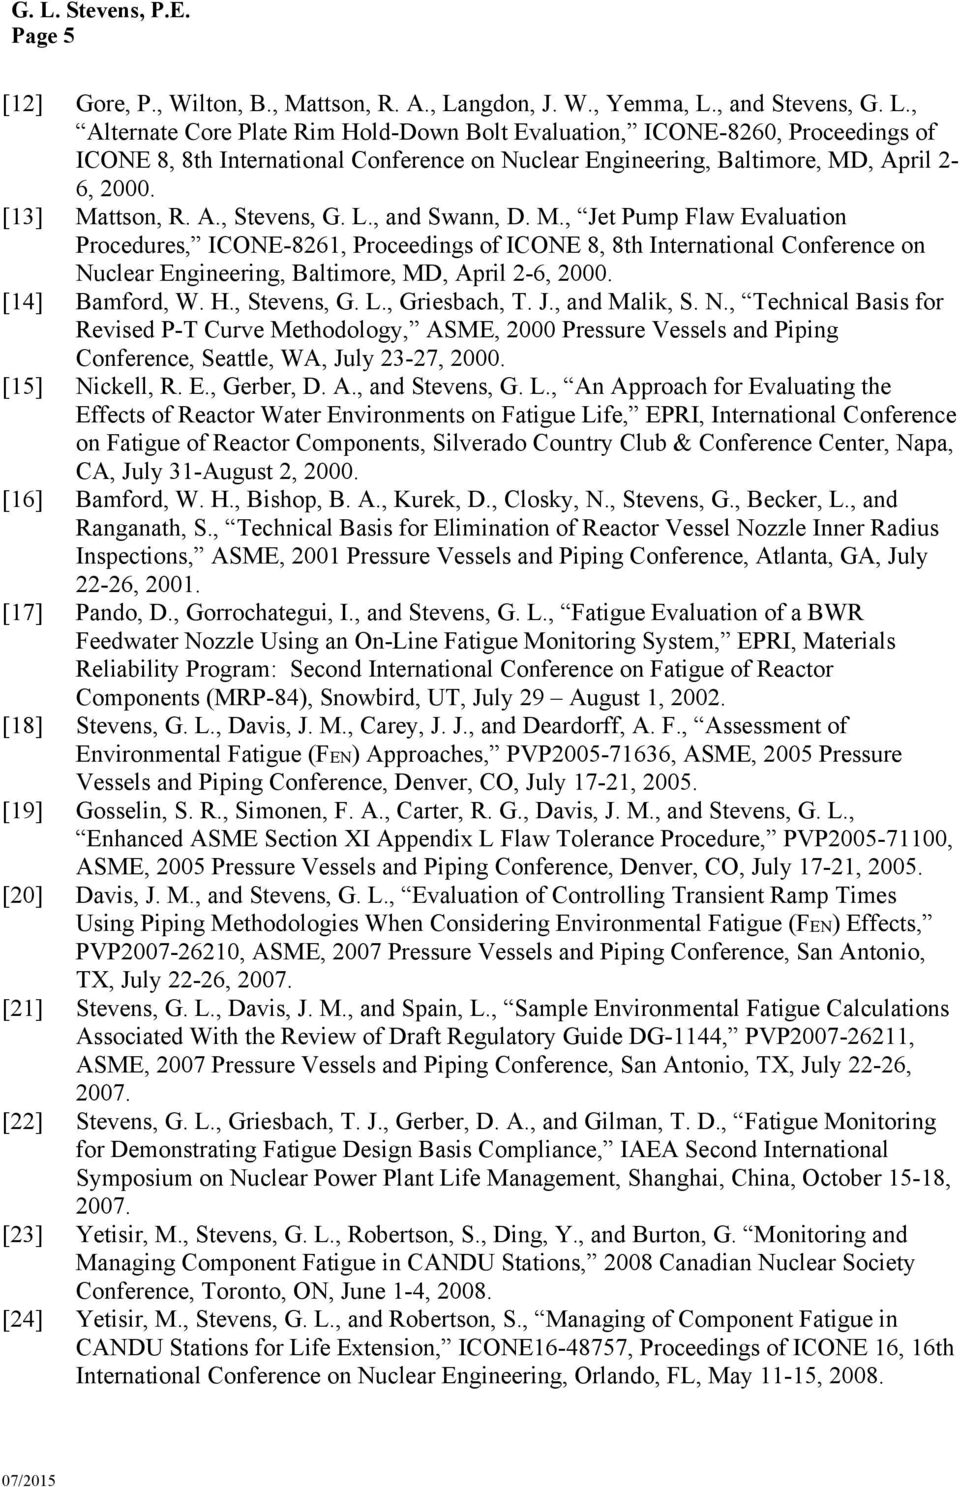 [13] Mattson, R. A., Stevens, G. L., and Swann, D. M., Jet Pump Flaw Evaluation Procedures, ICONE-8261, Proceedings of ICONE 8, 8th International Conference on Nuclear Engineering, Baltimore, MD, April 2-6, 2000.